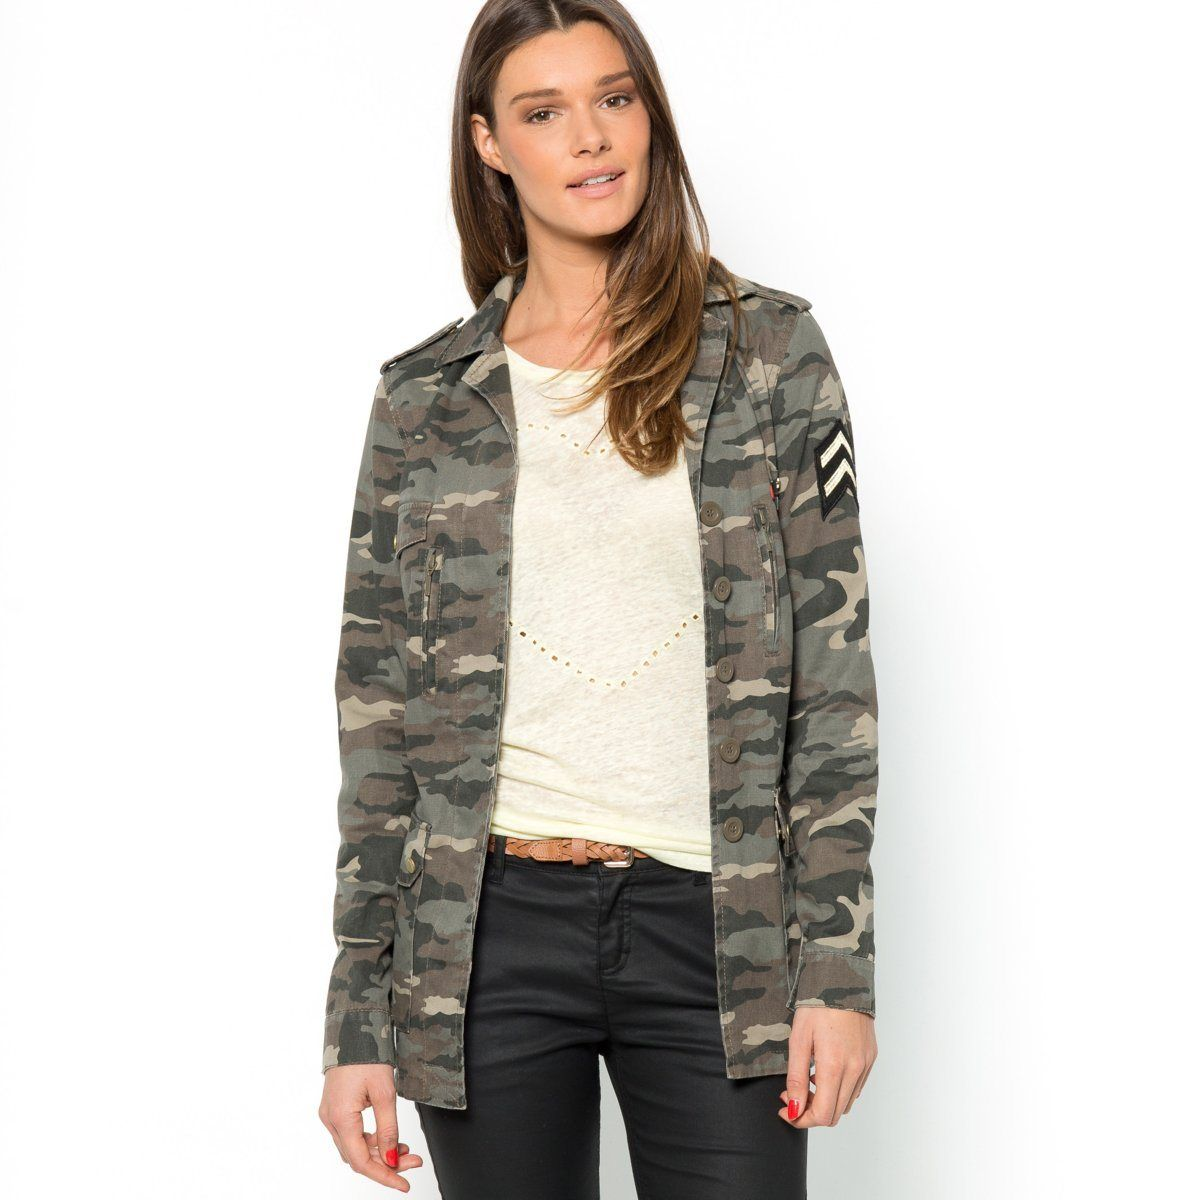 veste army coton imprim camouflage mode militaire pour femme pinterest vestes. Black Bedroom Furniture Sets. Home Design Ideas